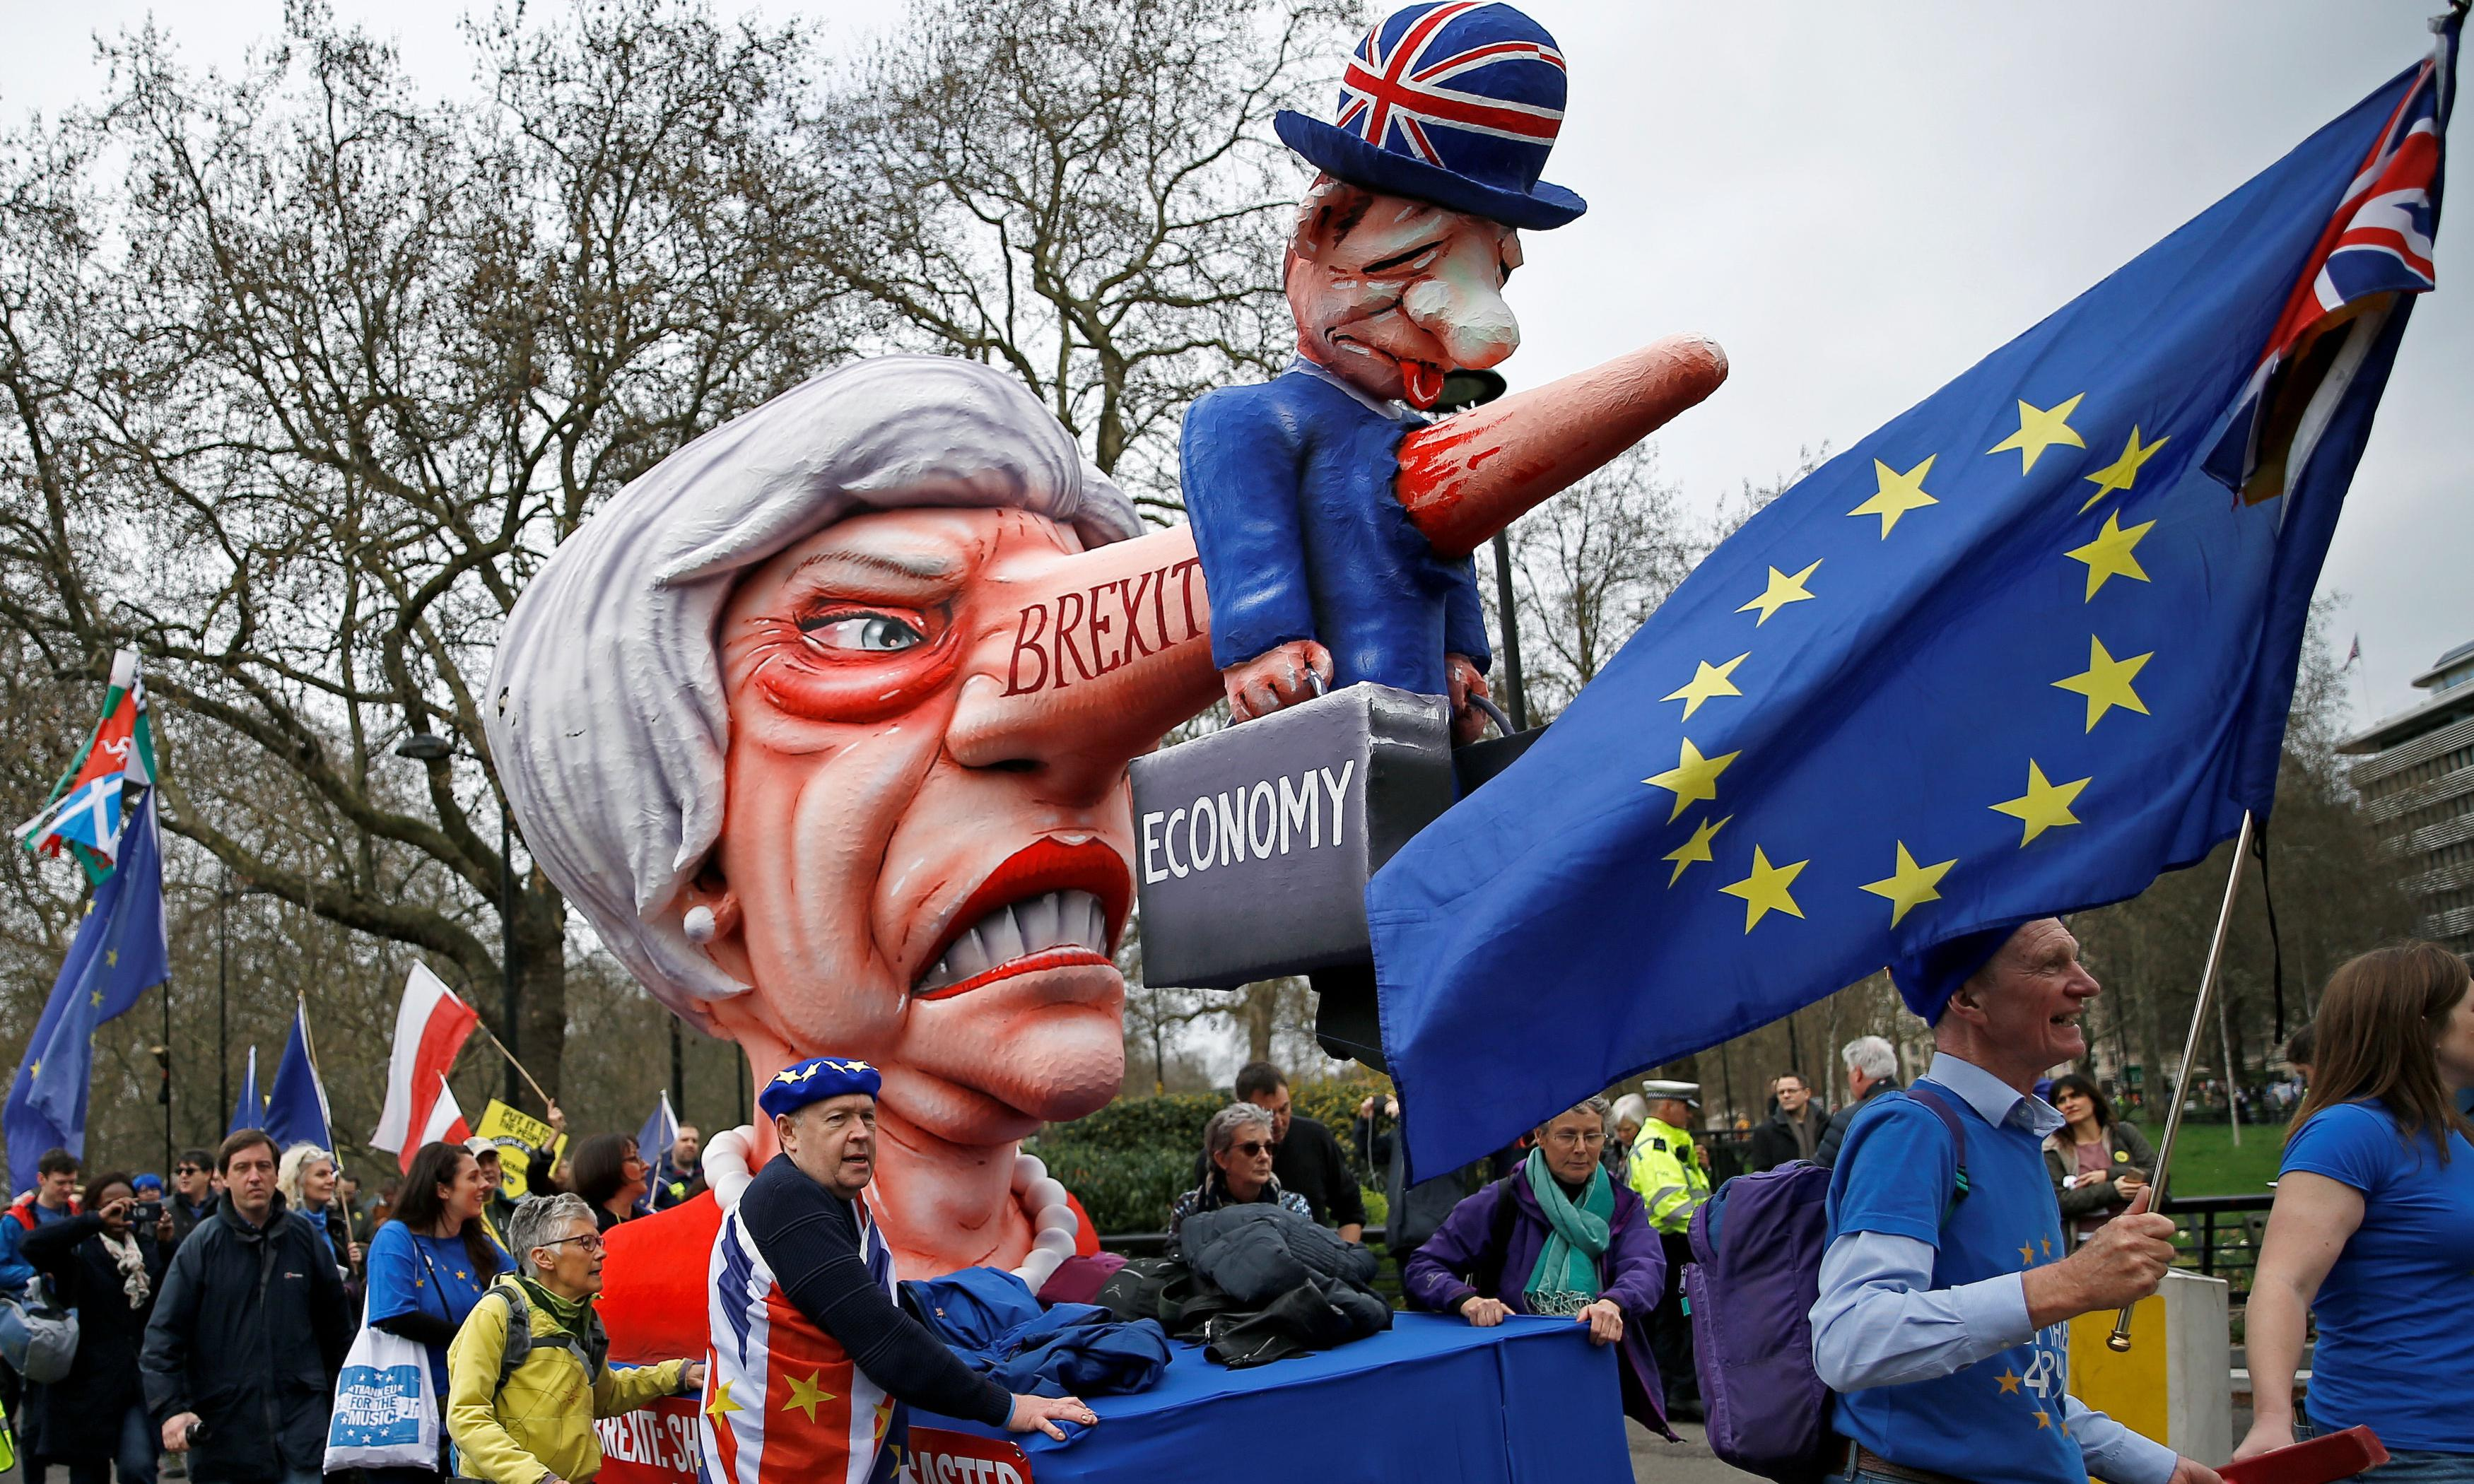 Does Britain really want an isolated future, buffeted by forces beyond our control?